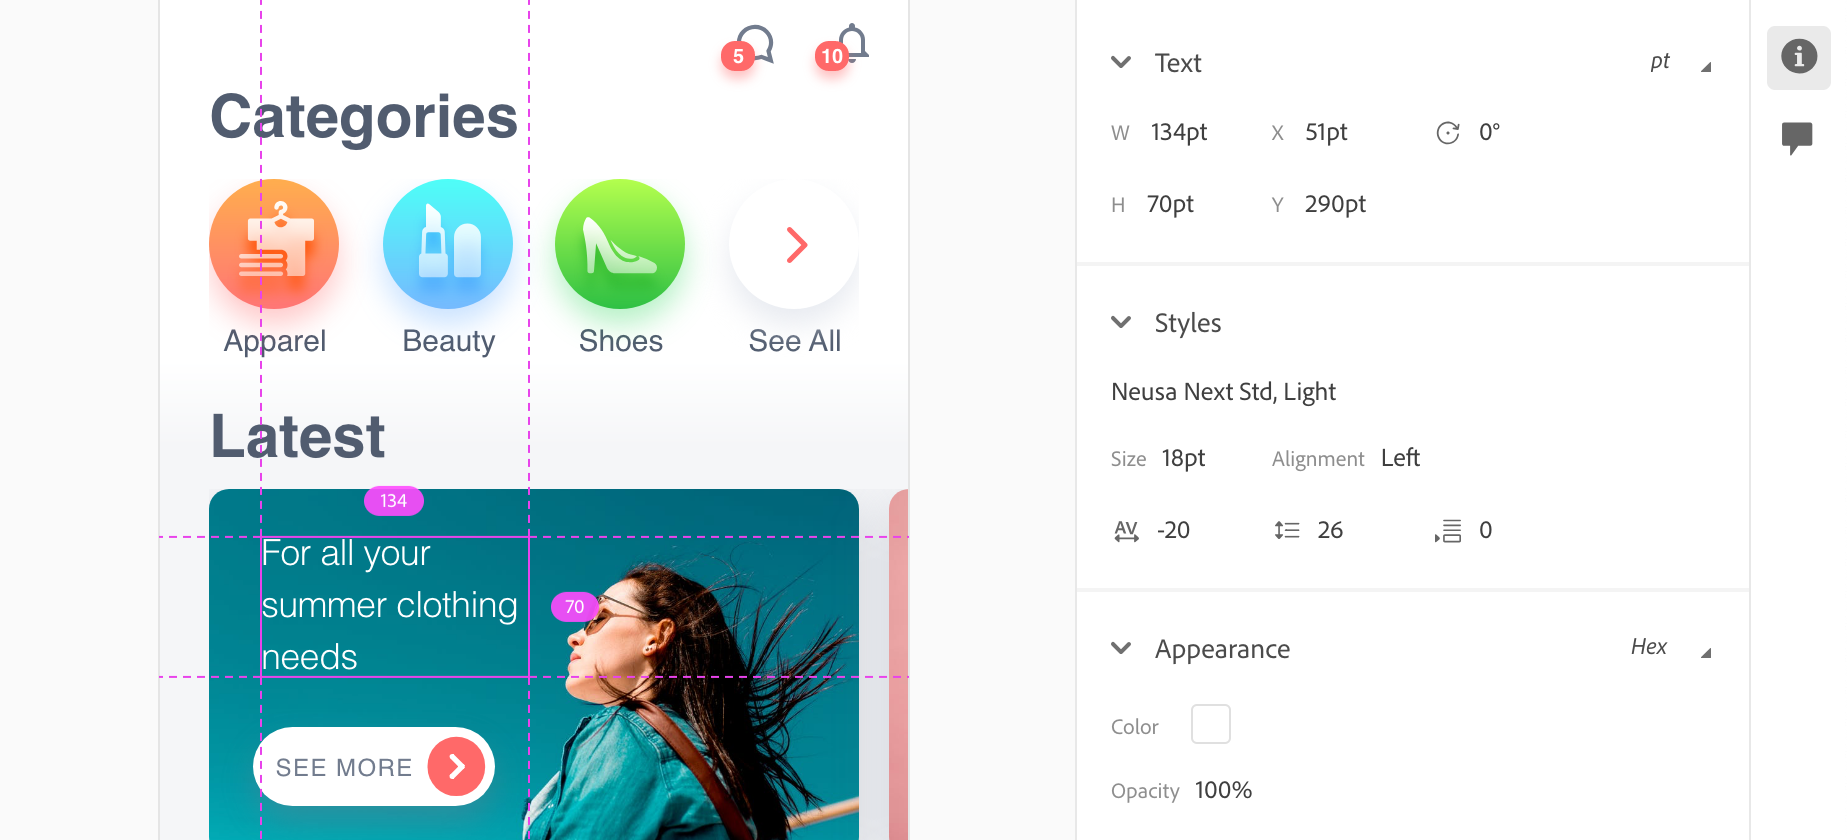 Adobe experience design vs Sketch: Adobe XD offers built-in design specs